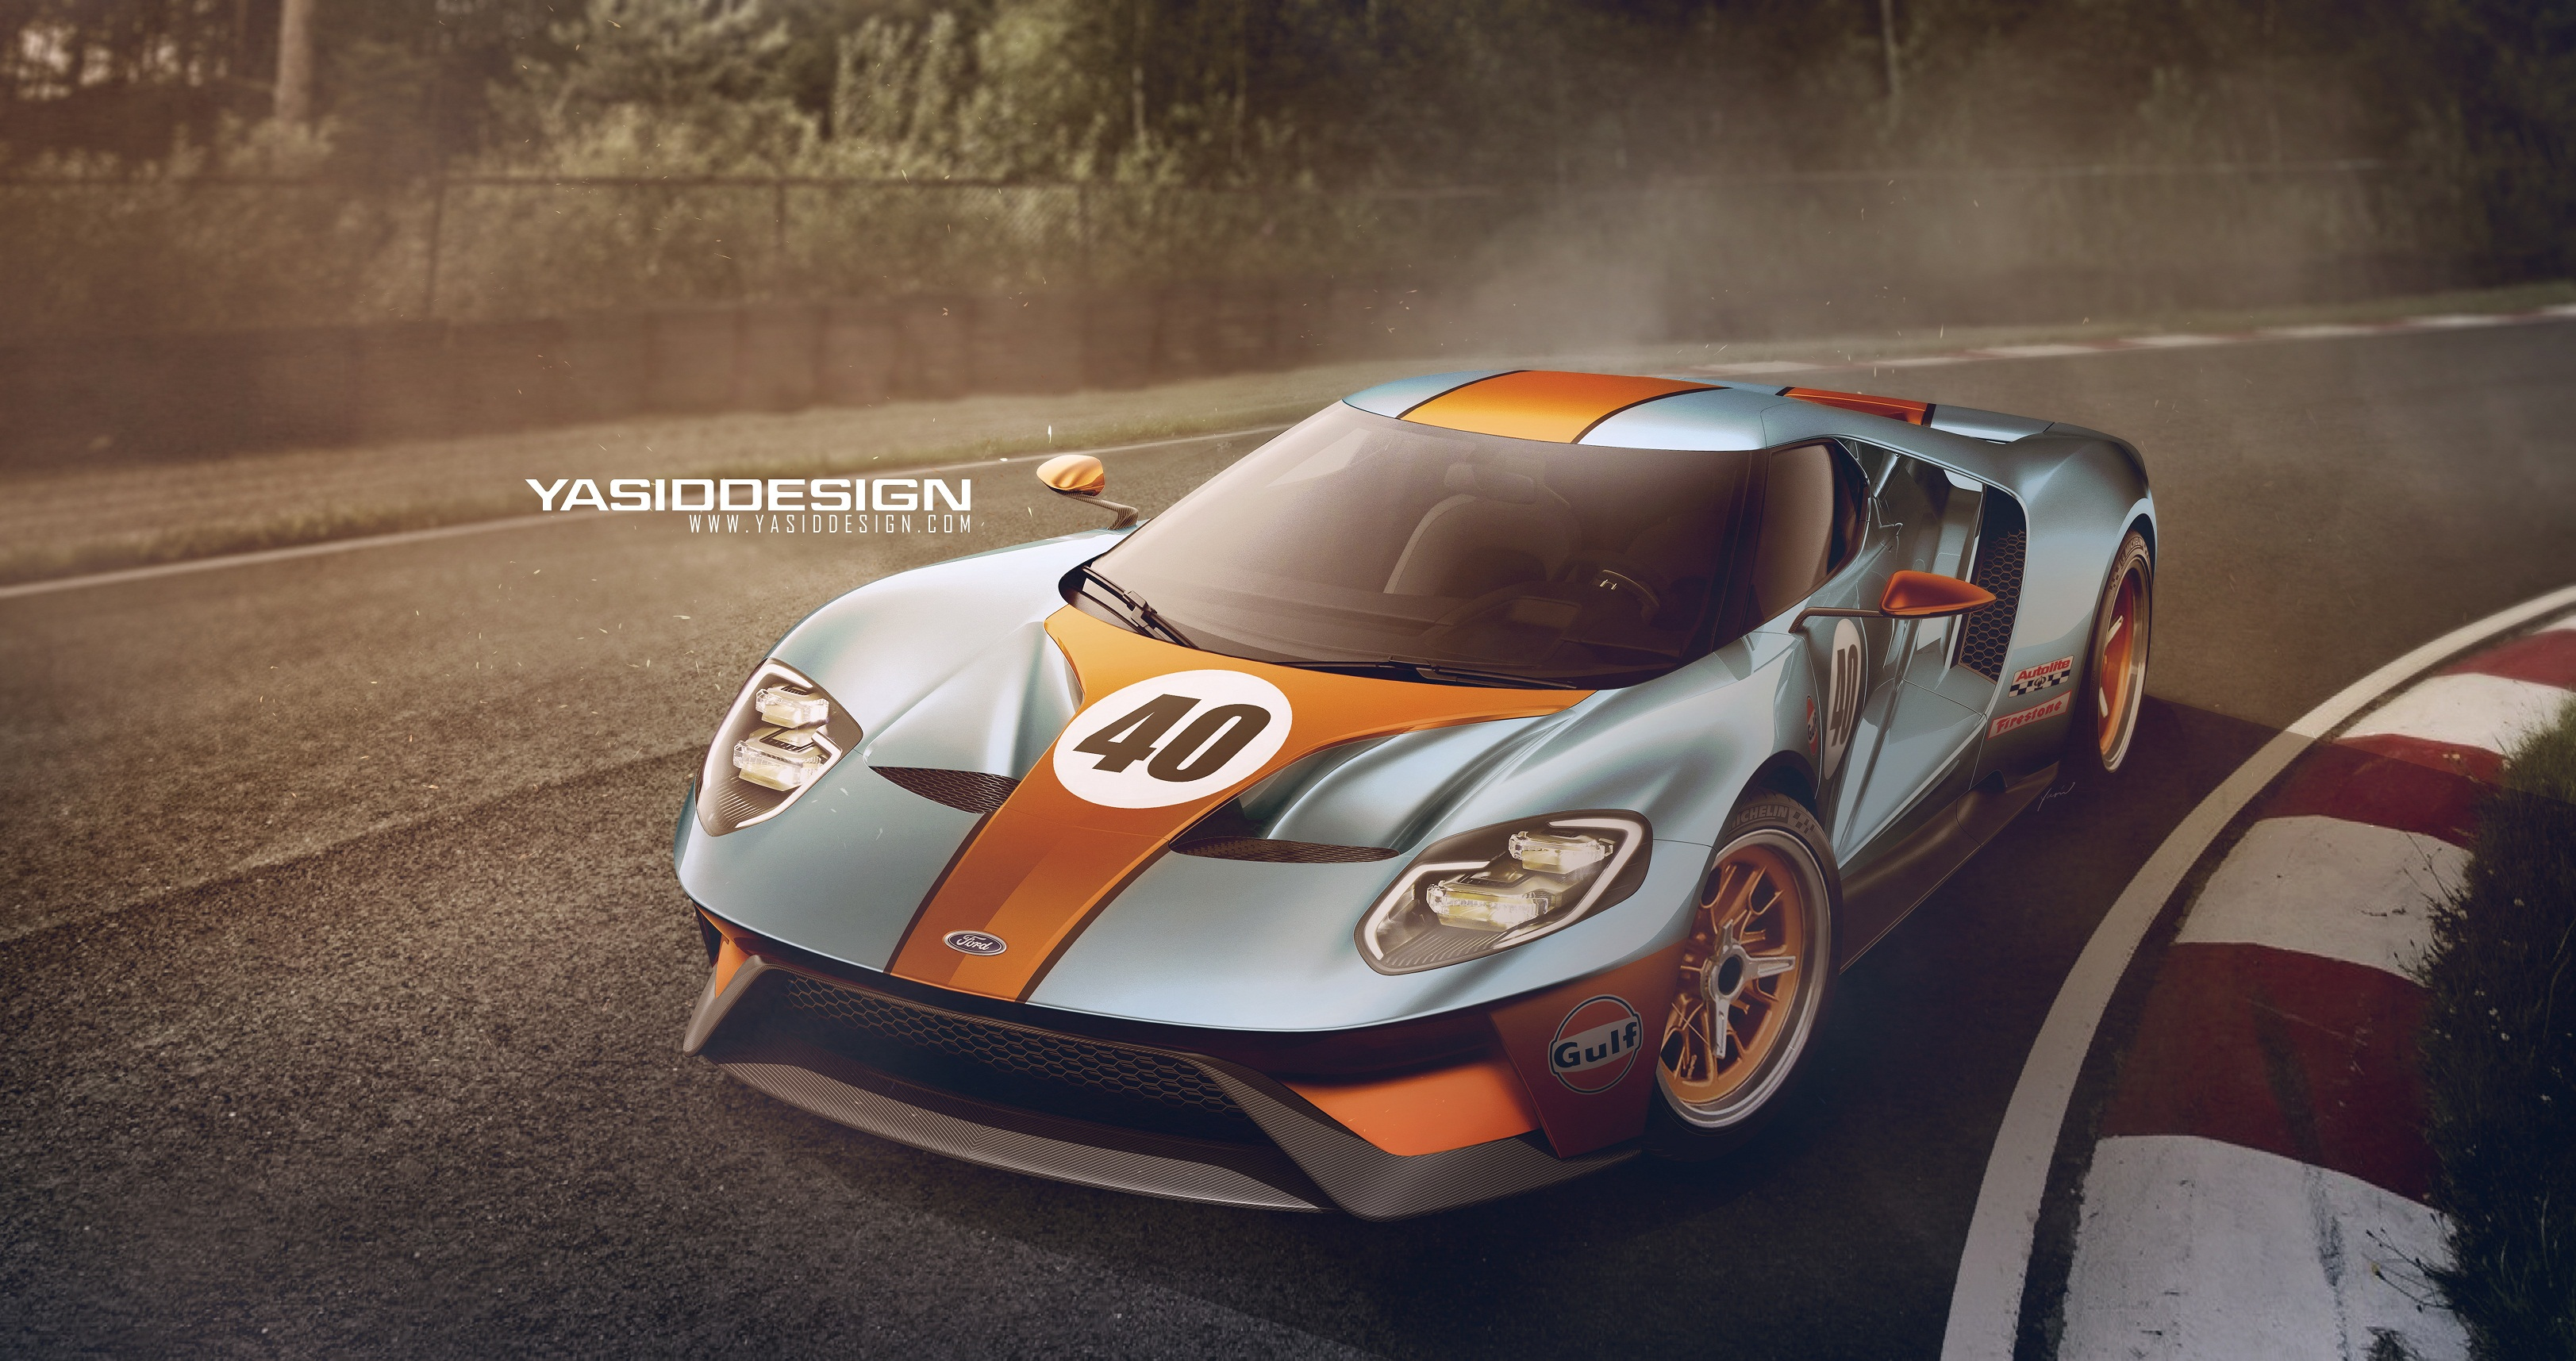 41 comments - 1966 Ford Gt40 Gulf